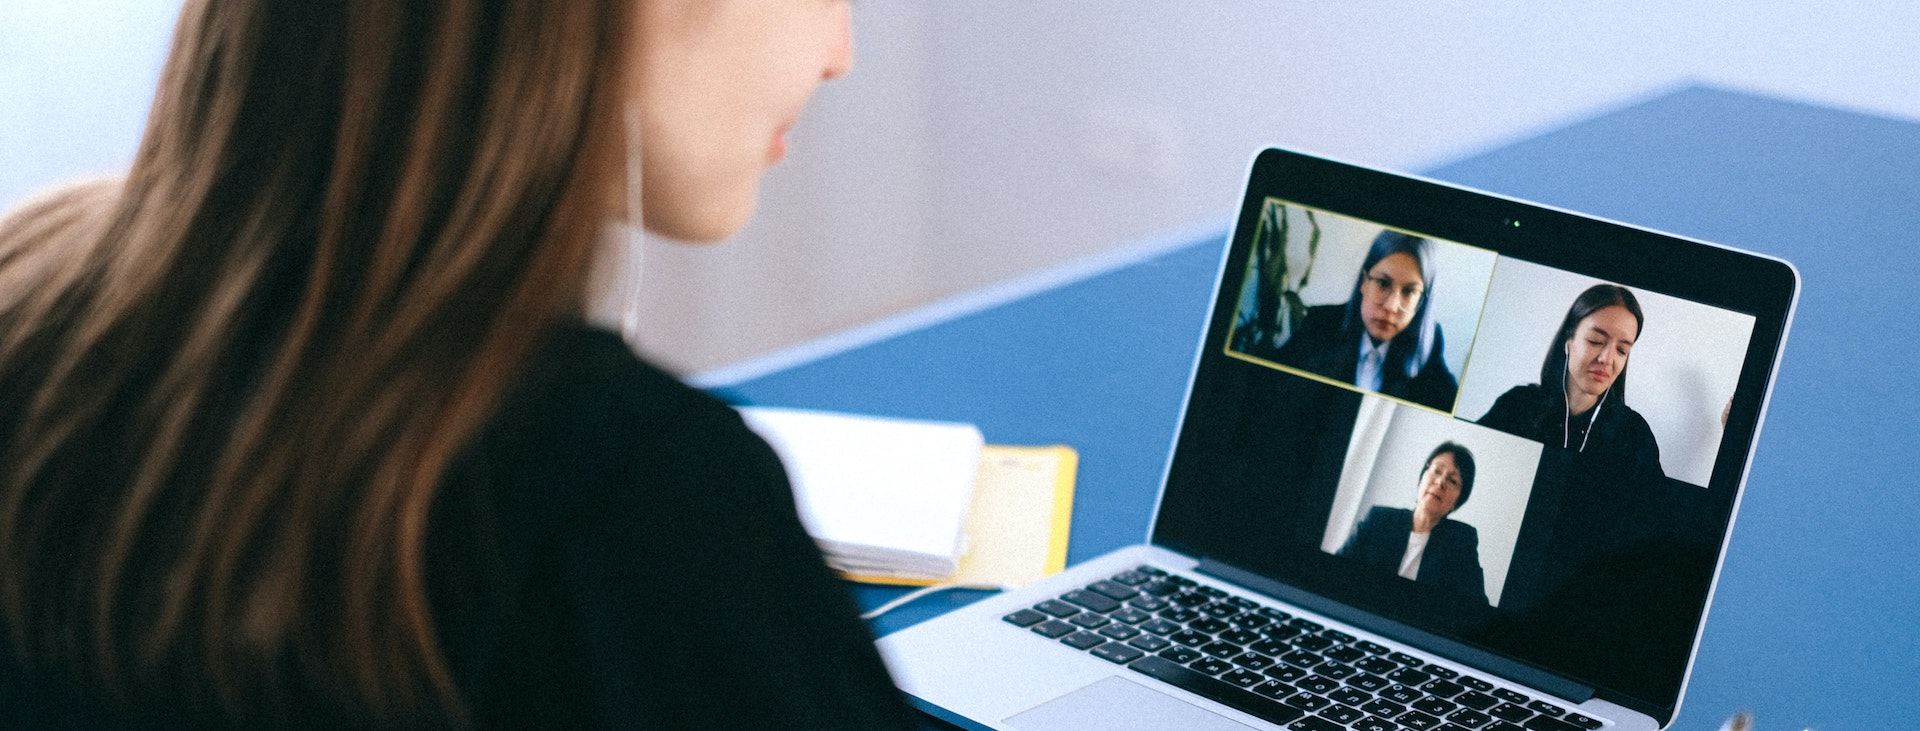 Woman at desk on video call